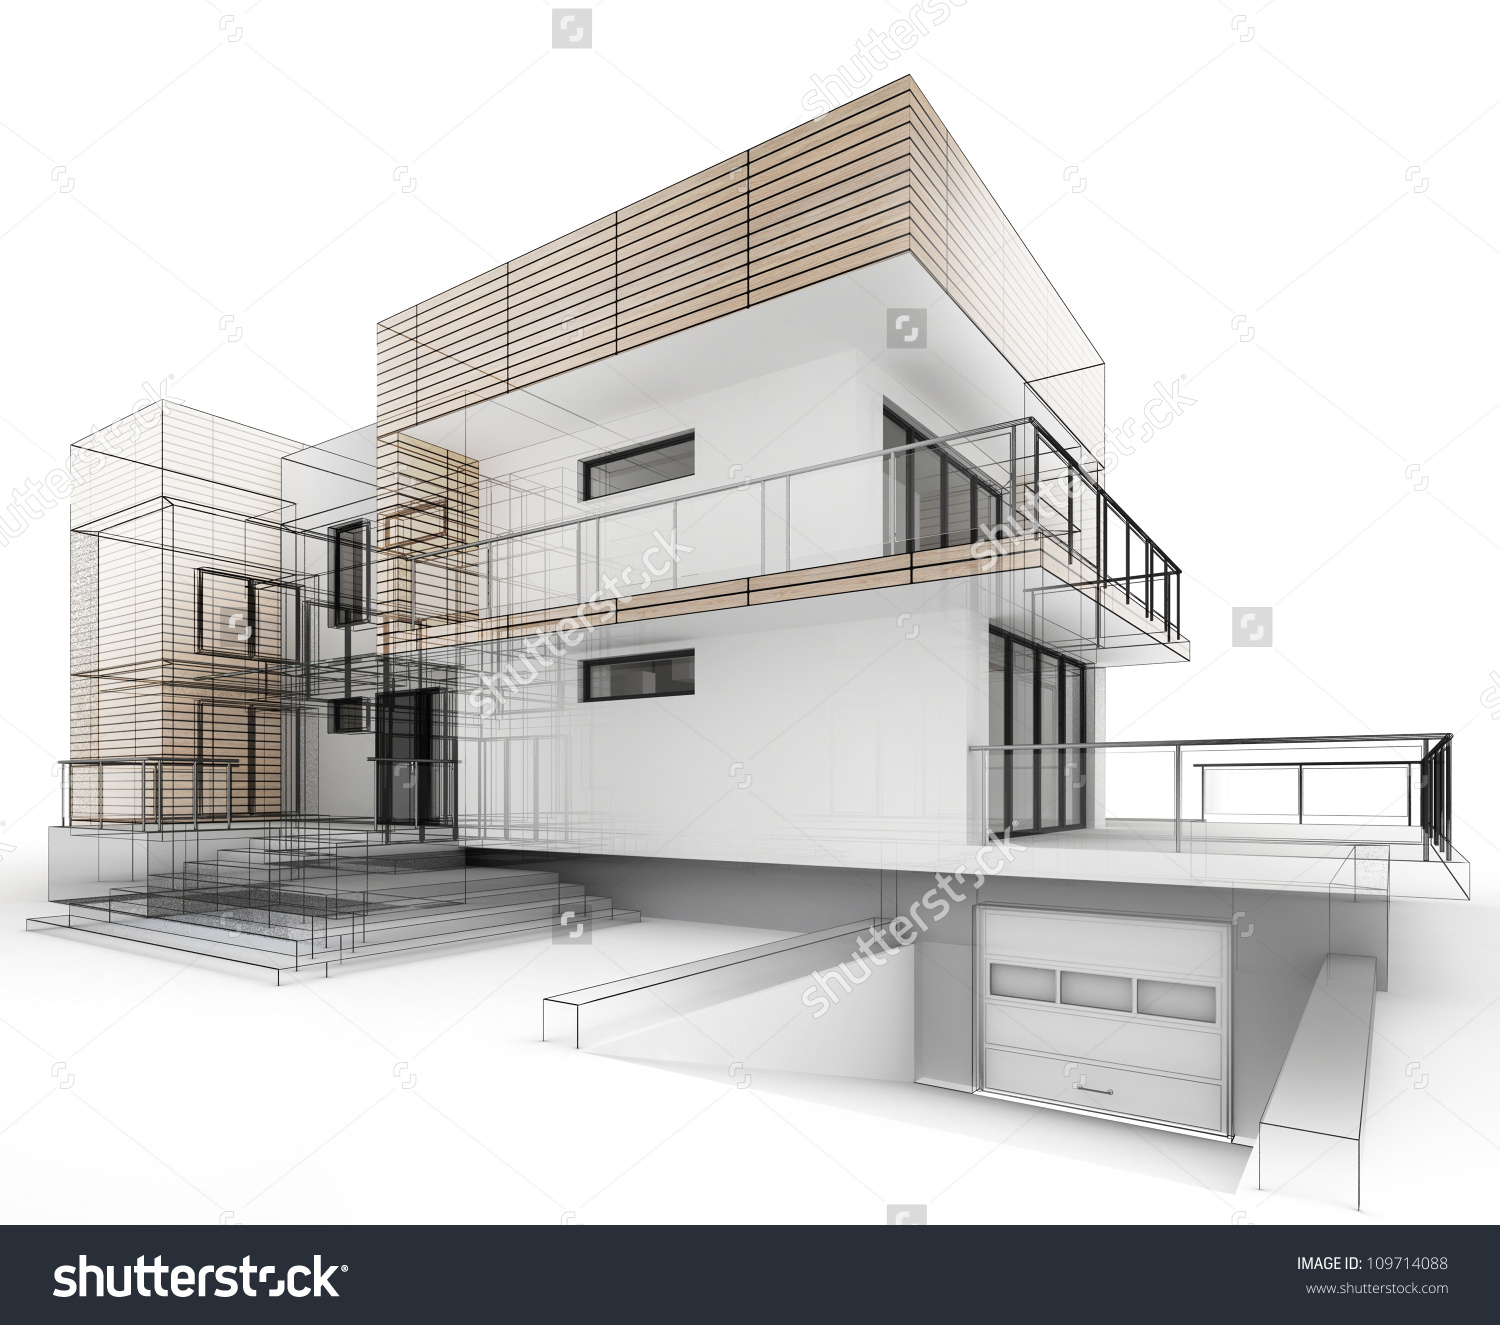 simple architecture design drawing.  Design 1500x1325 Architecture Design House Drawing With Simple I